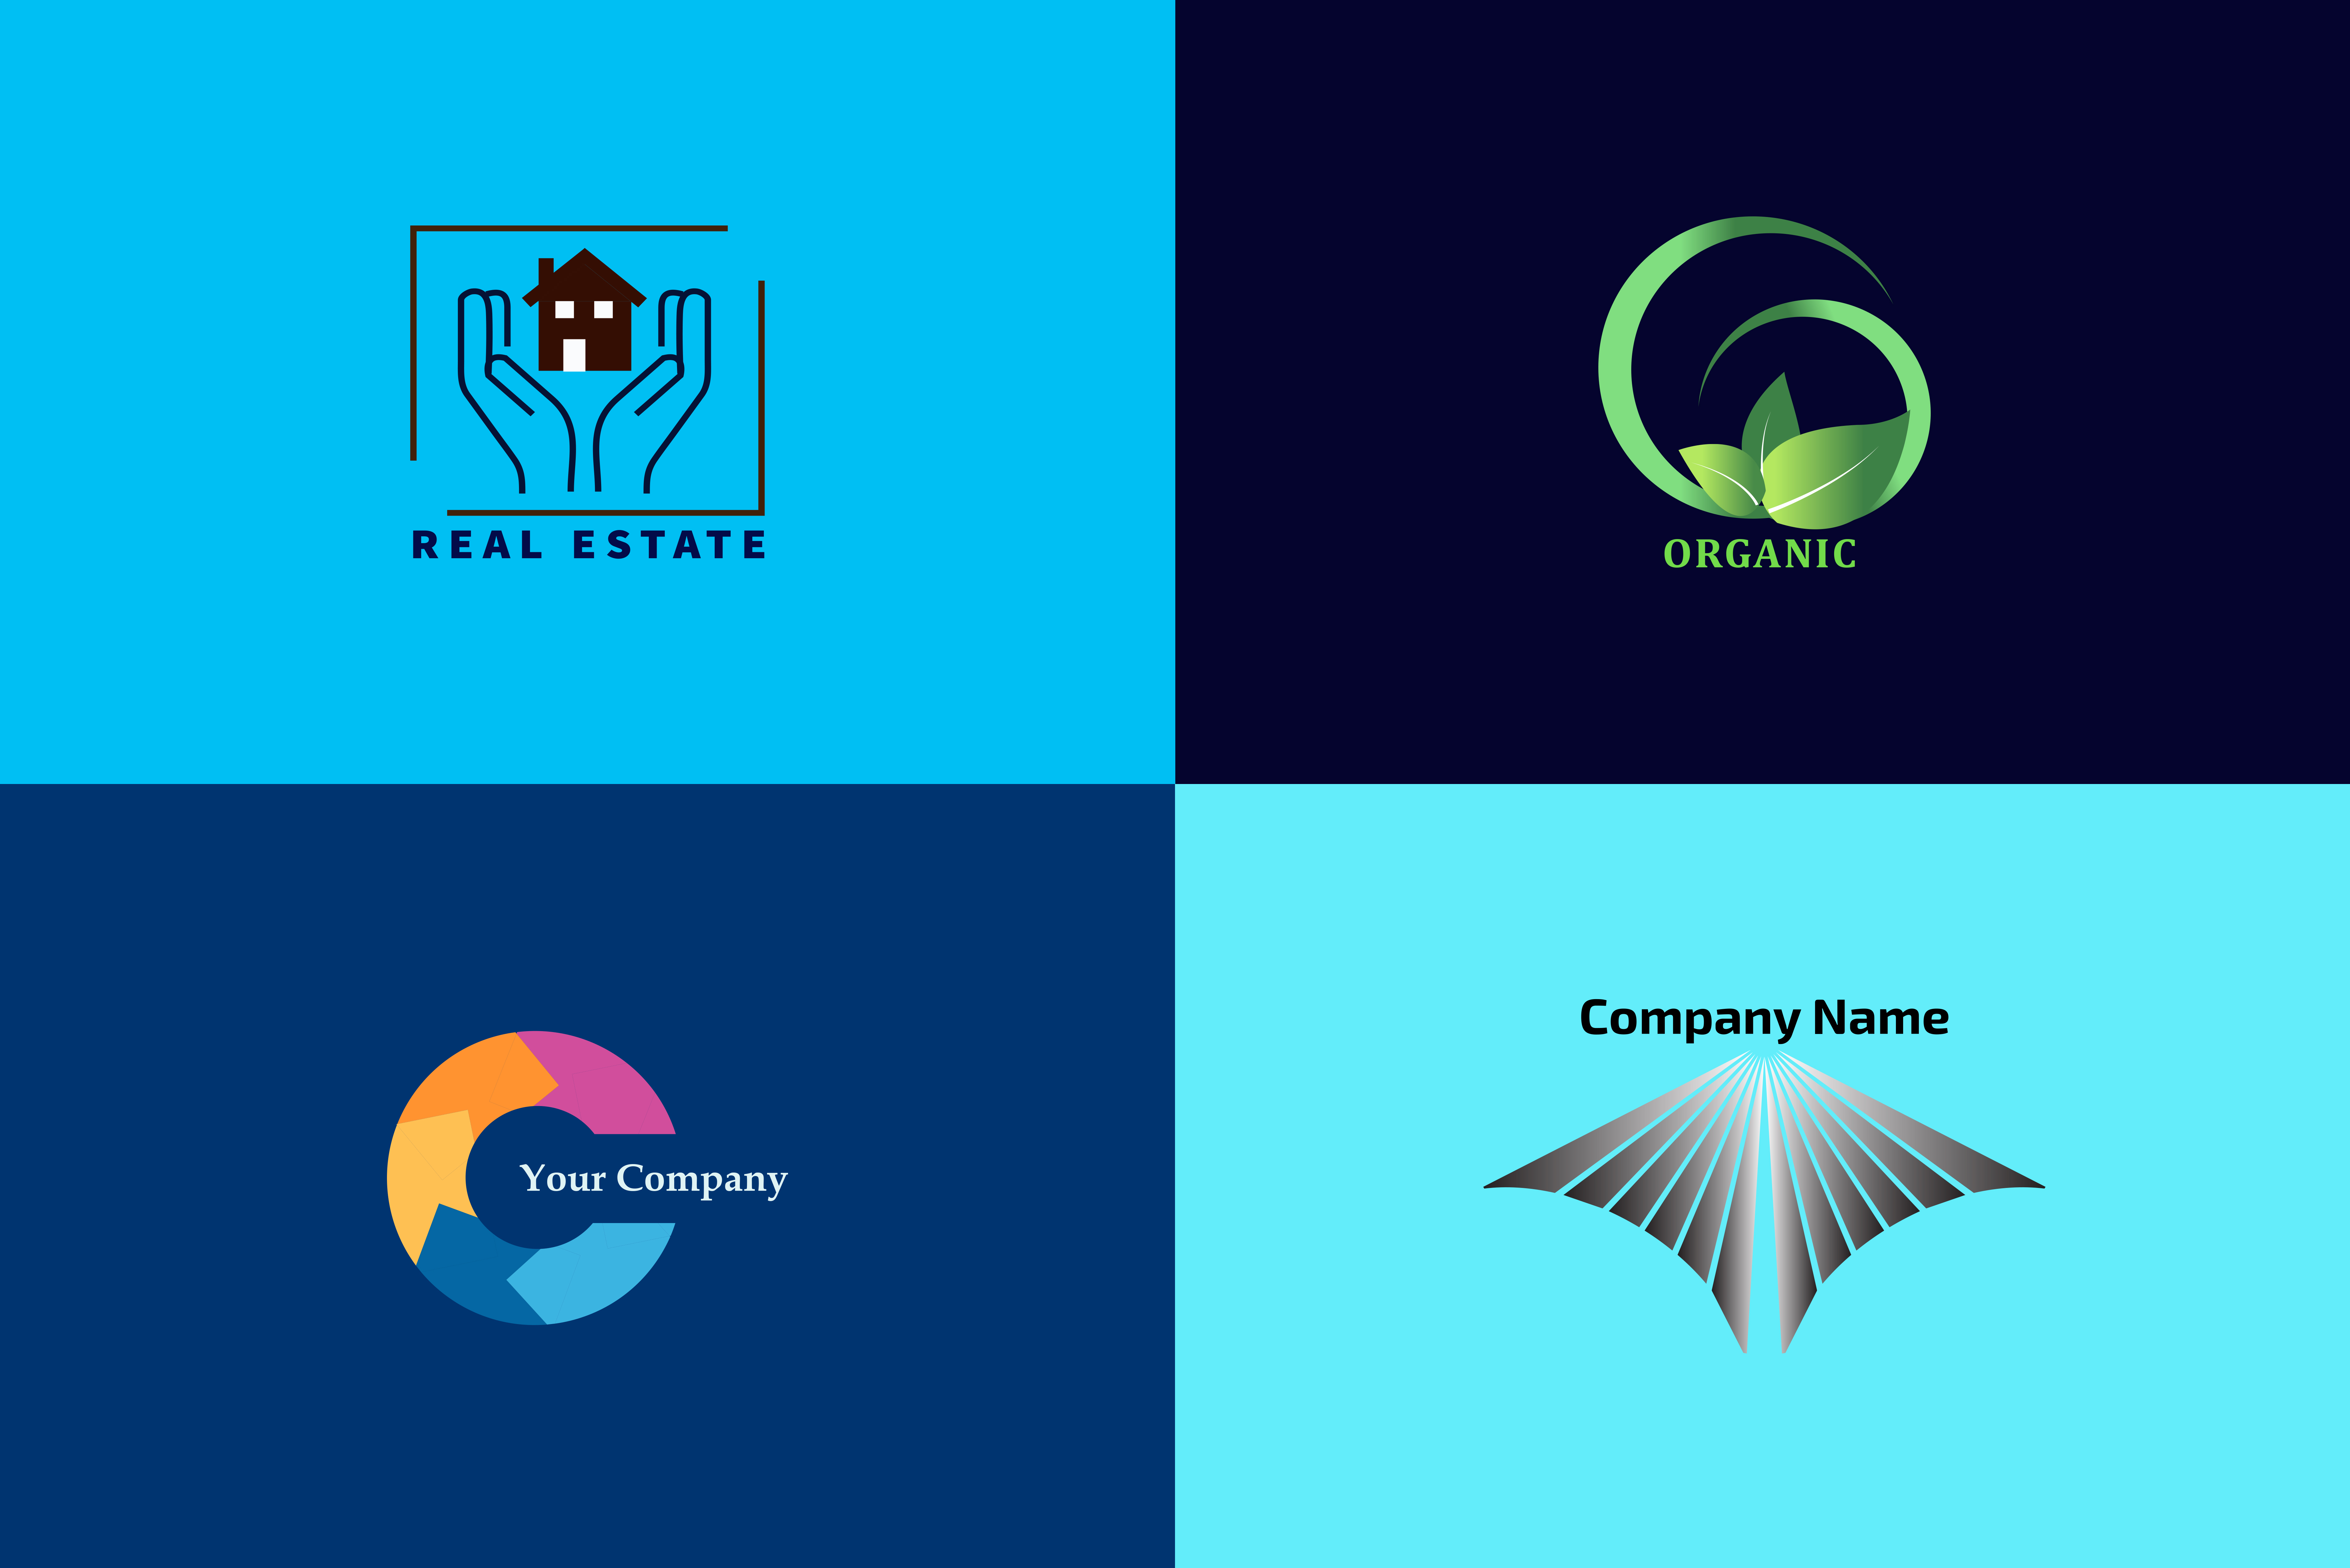 I will design simple creative and minimalist logo for your business